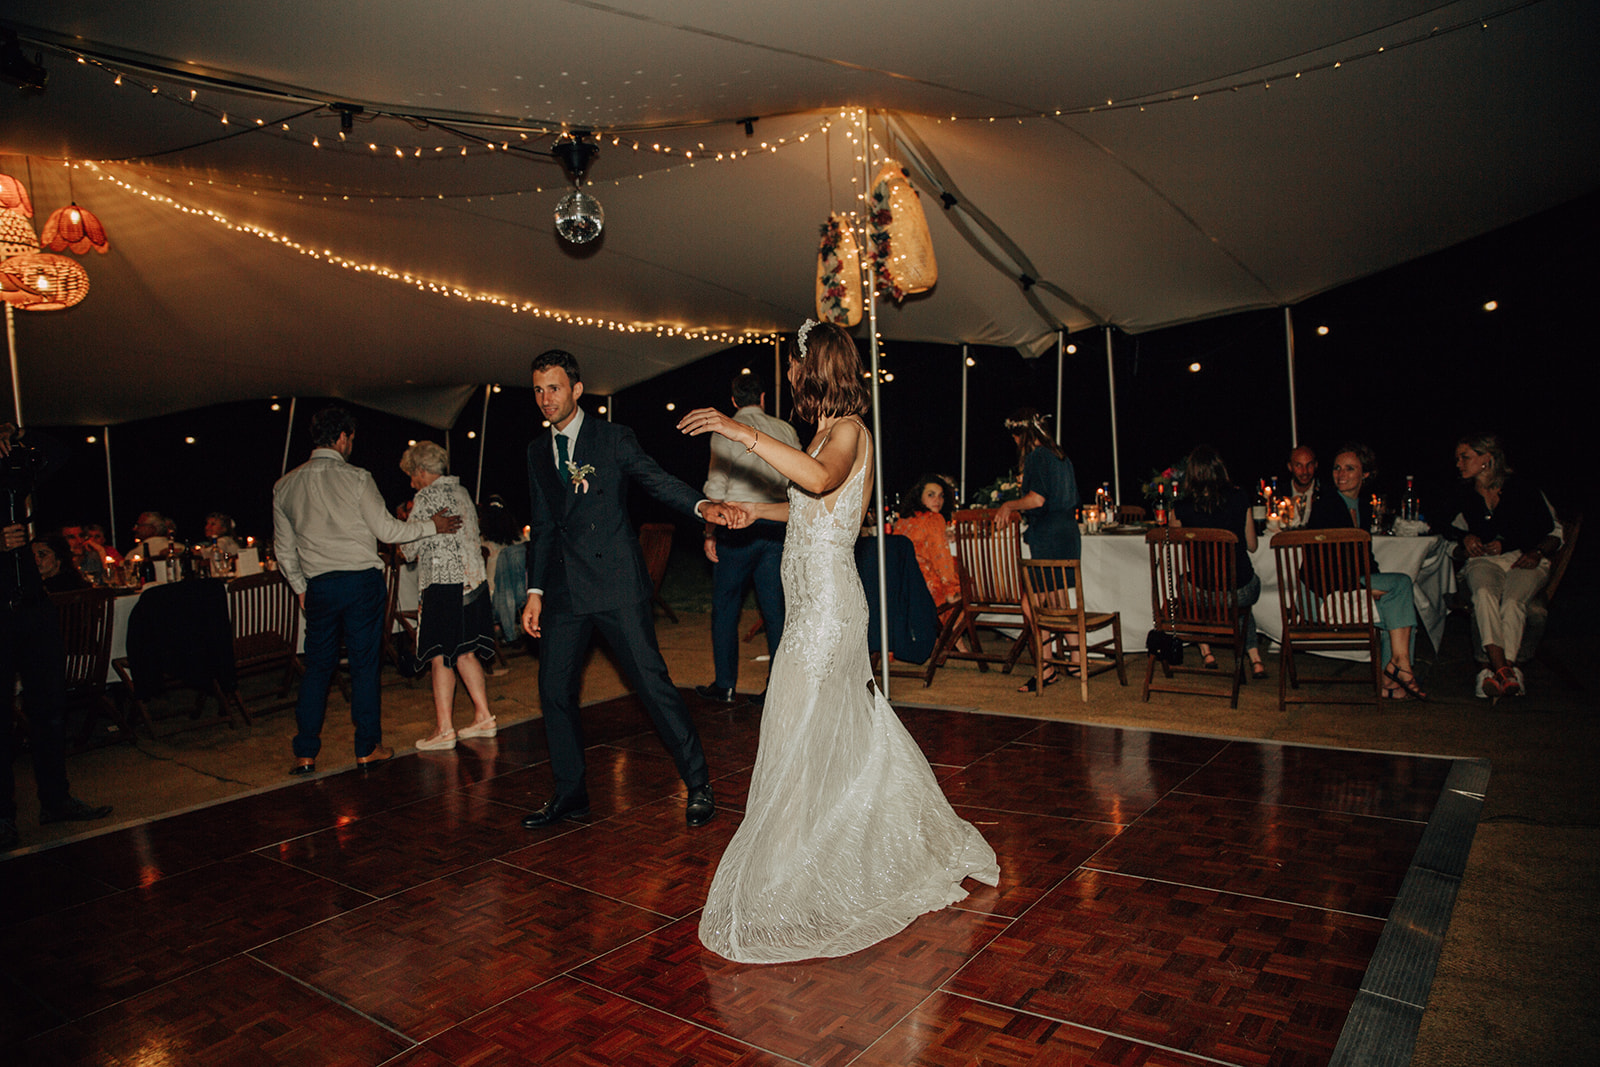 Photography here done by the wonderful Marine Marques Weddings & fairy lights/ lamp shades by the team at Le Scenographe!! Check them out!